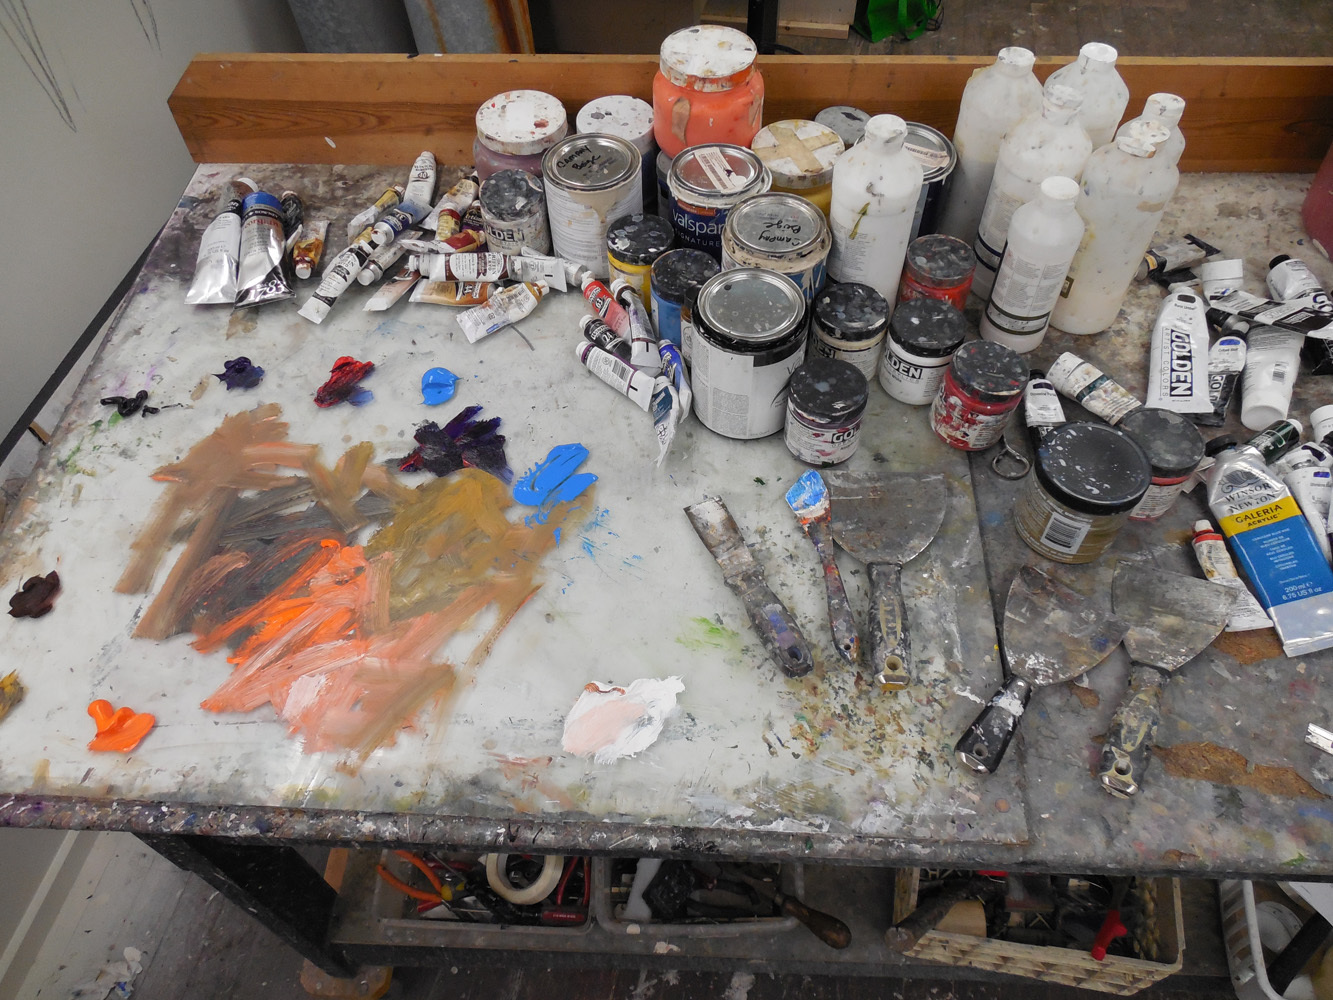 I come in everyday to my studio. I have a moderate 500 square foot space with cathedral ceilings about 12ft high. I have a long wall that I painted a mural on. I have a box that I built on rollers which can handle a lot of the taller pieces. It's a very physical work space. I have palate knives that I get from Home Depot or Lowes. I buy a lot of the tools from hardware stores. When people look at my work they can feel how physical it is. Very labor intensive projects that relay on a lot of different materials. I do 6 to 8 paintings at a time. I like to walk a semi-circle around my work. I want to have something to catch the viewer from every angle. I adjust things through this process. I want it to be enjoyed from all perspectives rather than just the face. In a lot of ways my paintings are sculptural